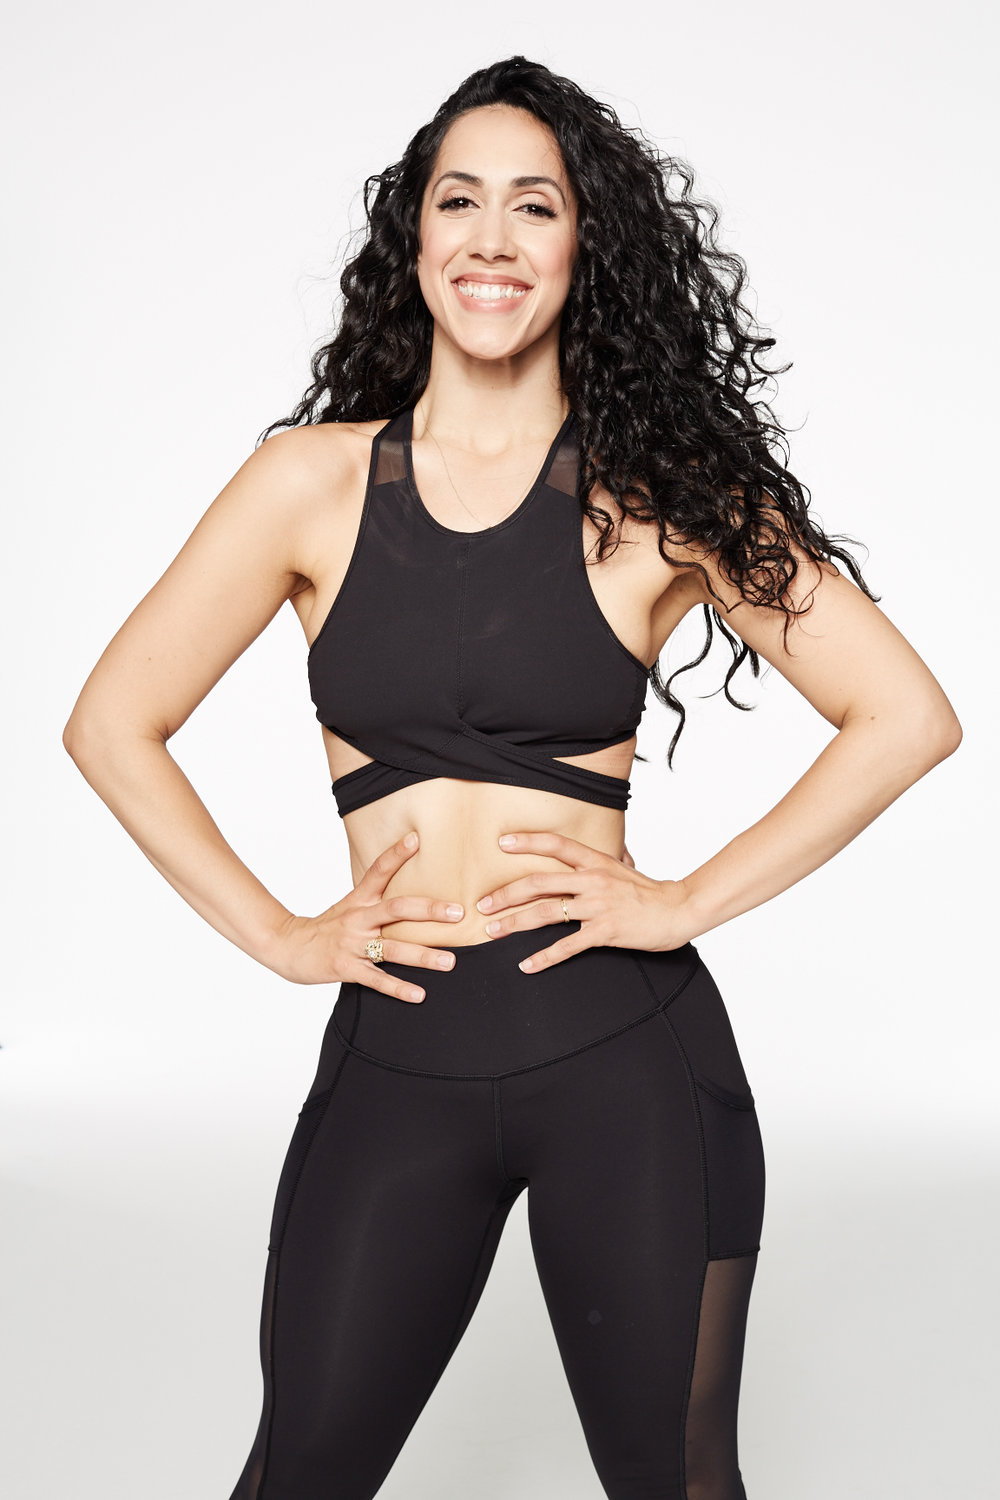 "Hi! - So, talking about myself is my LEAST favorite thing to do, but while you are on here, checking to see if KB is the place for you, let me introduce myself.I'm Meliza.I have spent most of my life dancing and performing and like many always in the search for that ""perfect"" body. Fitness fell into my lap, and before I knew it, it felt like the missing piece to the puzzle and decided to do things my own way and connect with YOU on a different level.KILLER BODIES is set to help you build, to gain control of your psyche and understand that perfection is unattainable but once we are empowered, we are unstoppable.We have different formats, so there is definitely something for everyone, but my entire mission is to get to you beyond your body. Whether it's through burpees, push-ups or simply dancing, I'm a true believer that there is nothing more life changing than movement itself."